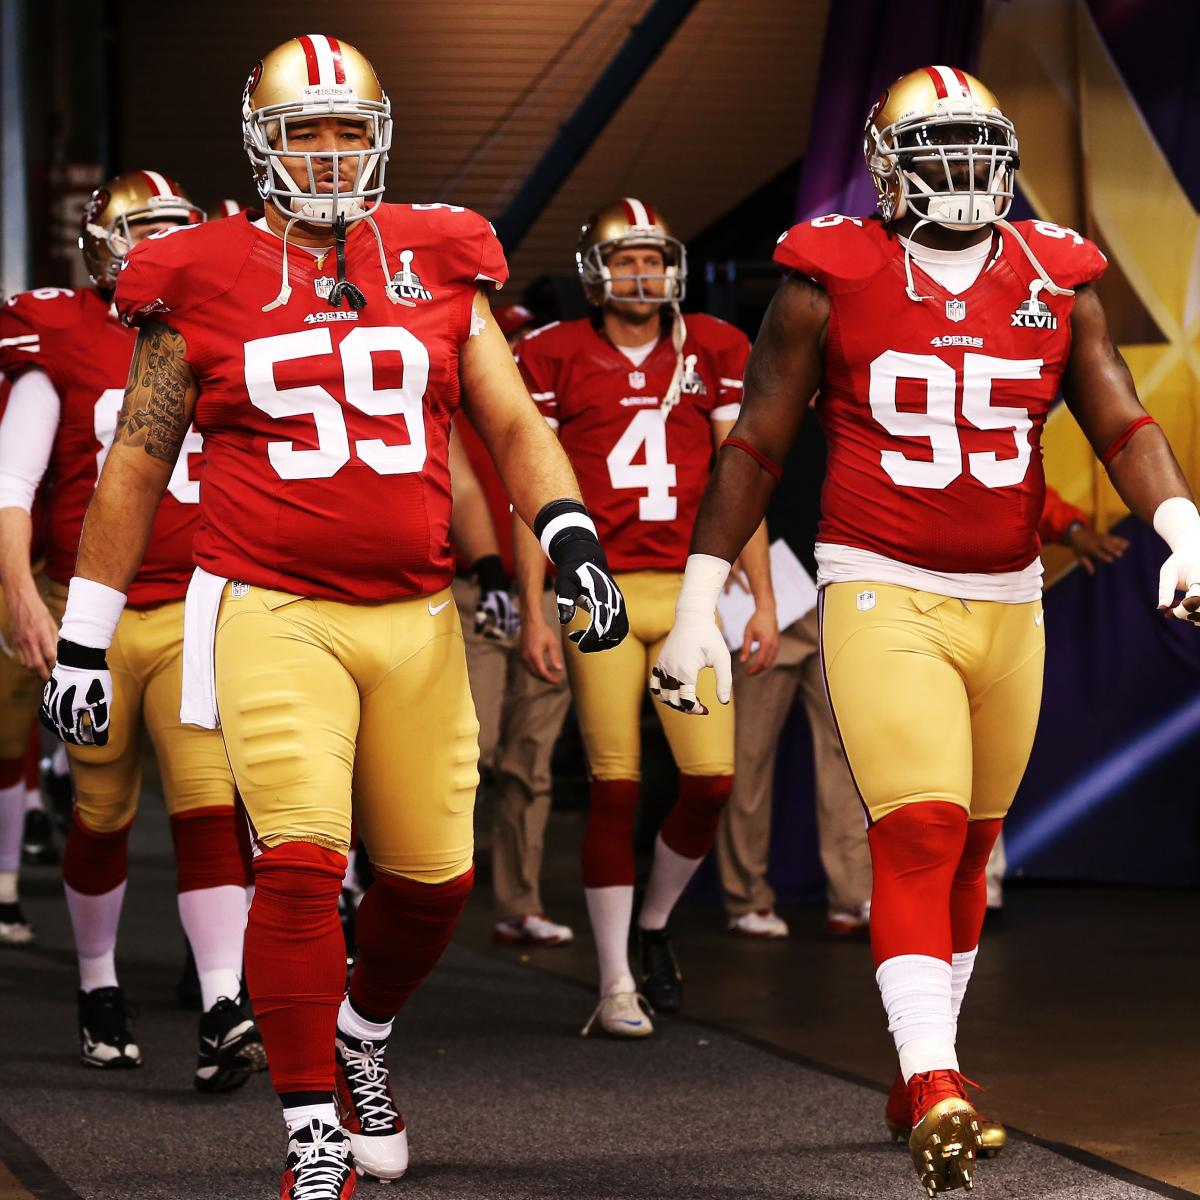 San Diego Chargers Depth Chart 2013: San Francisco 49ers Roster 2013: Latest Cuts, Depth Charts